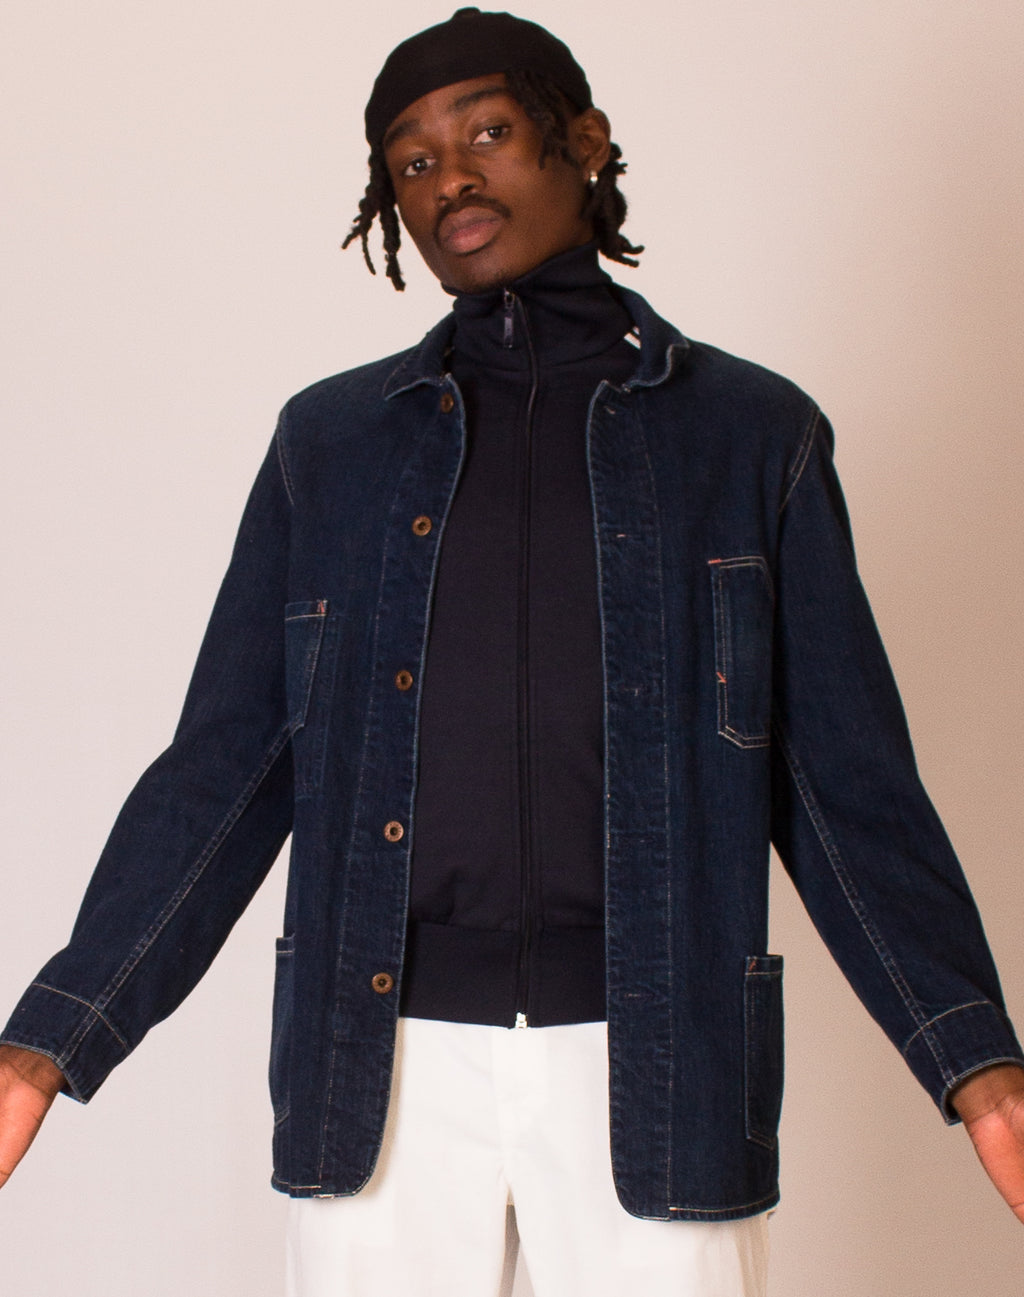 RALPH LAUREN DENIM WORK SHACKET